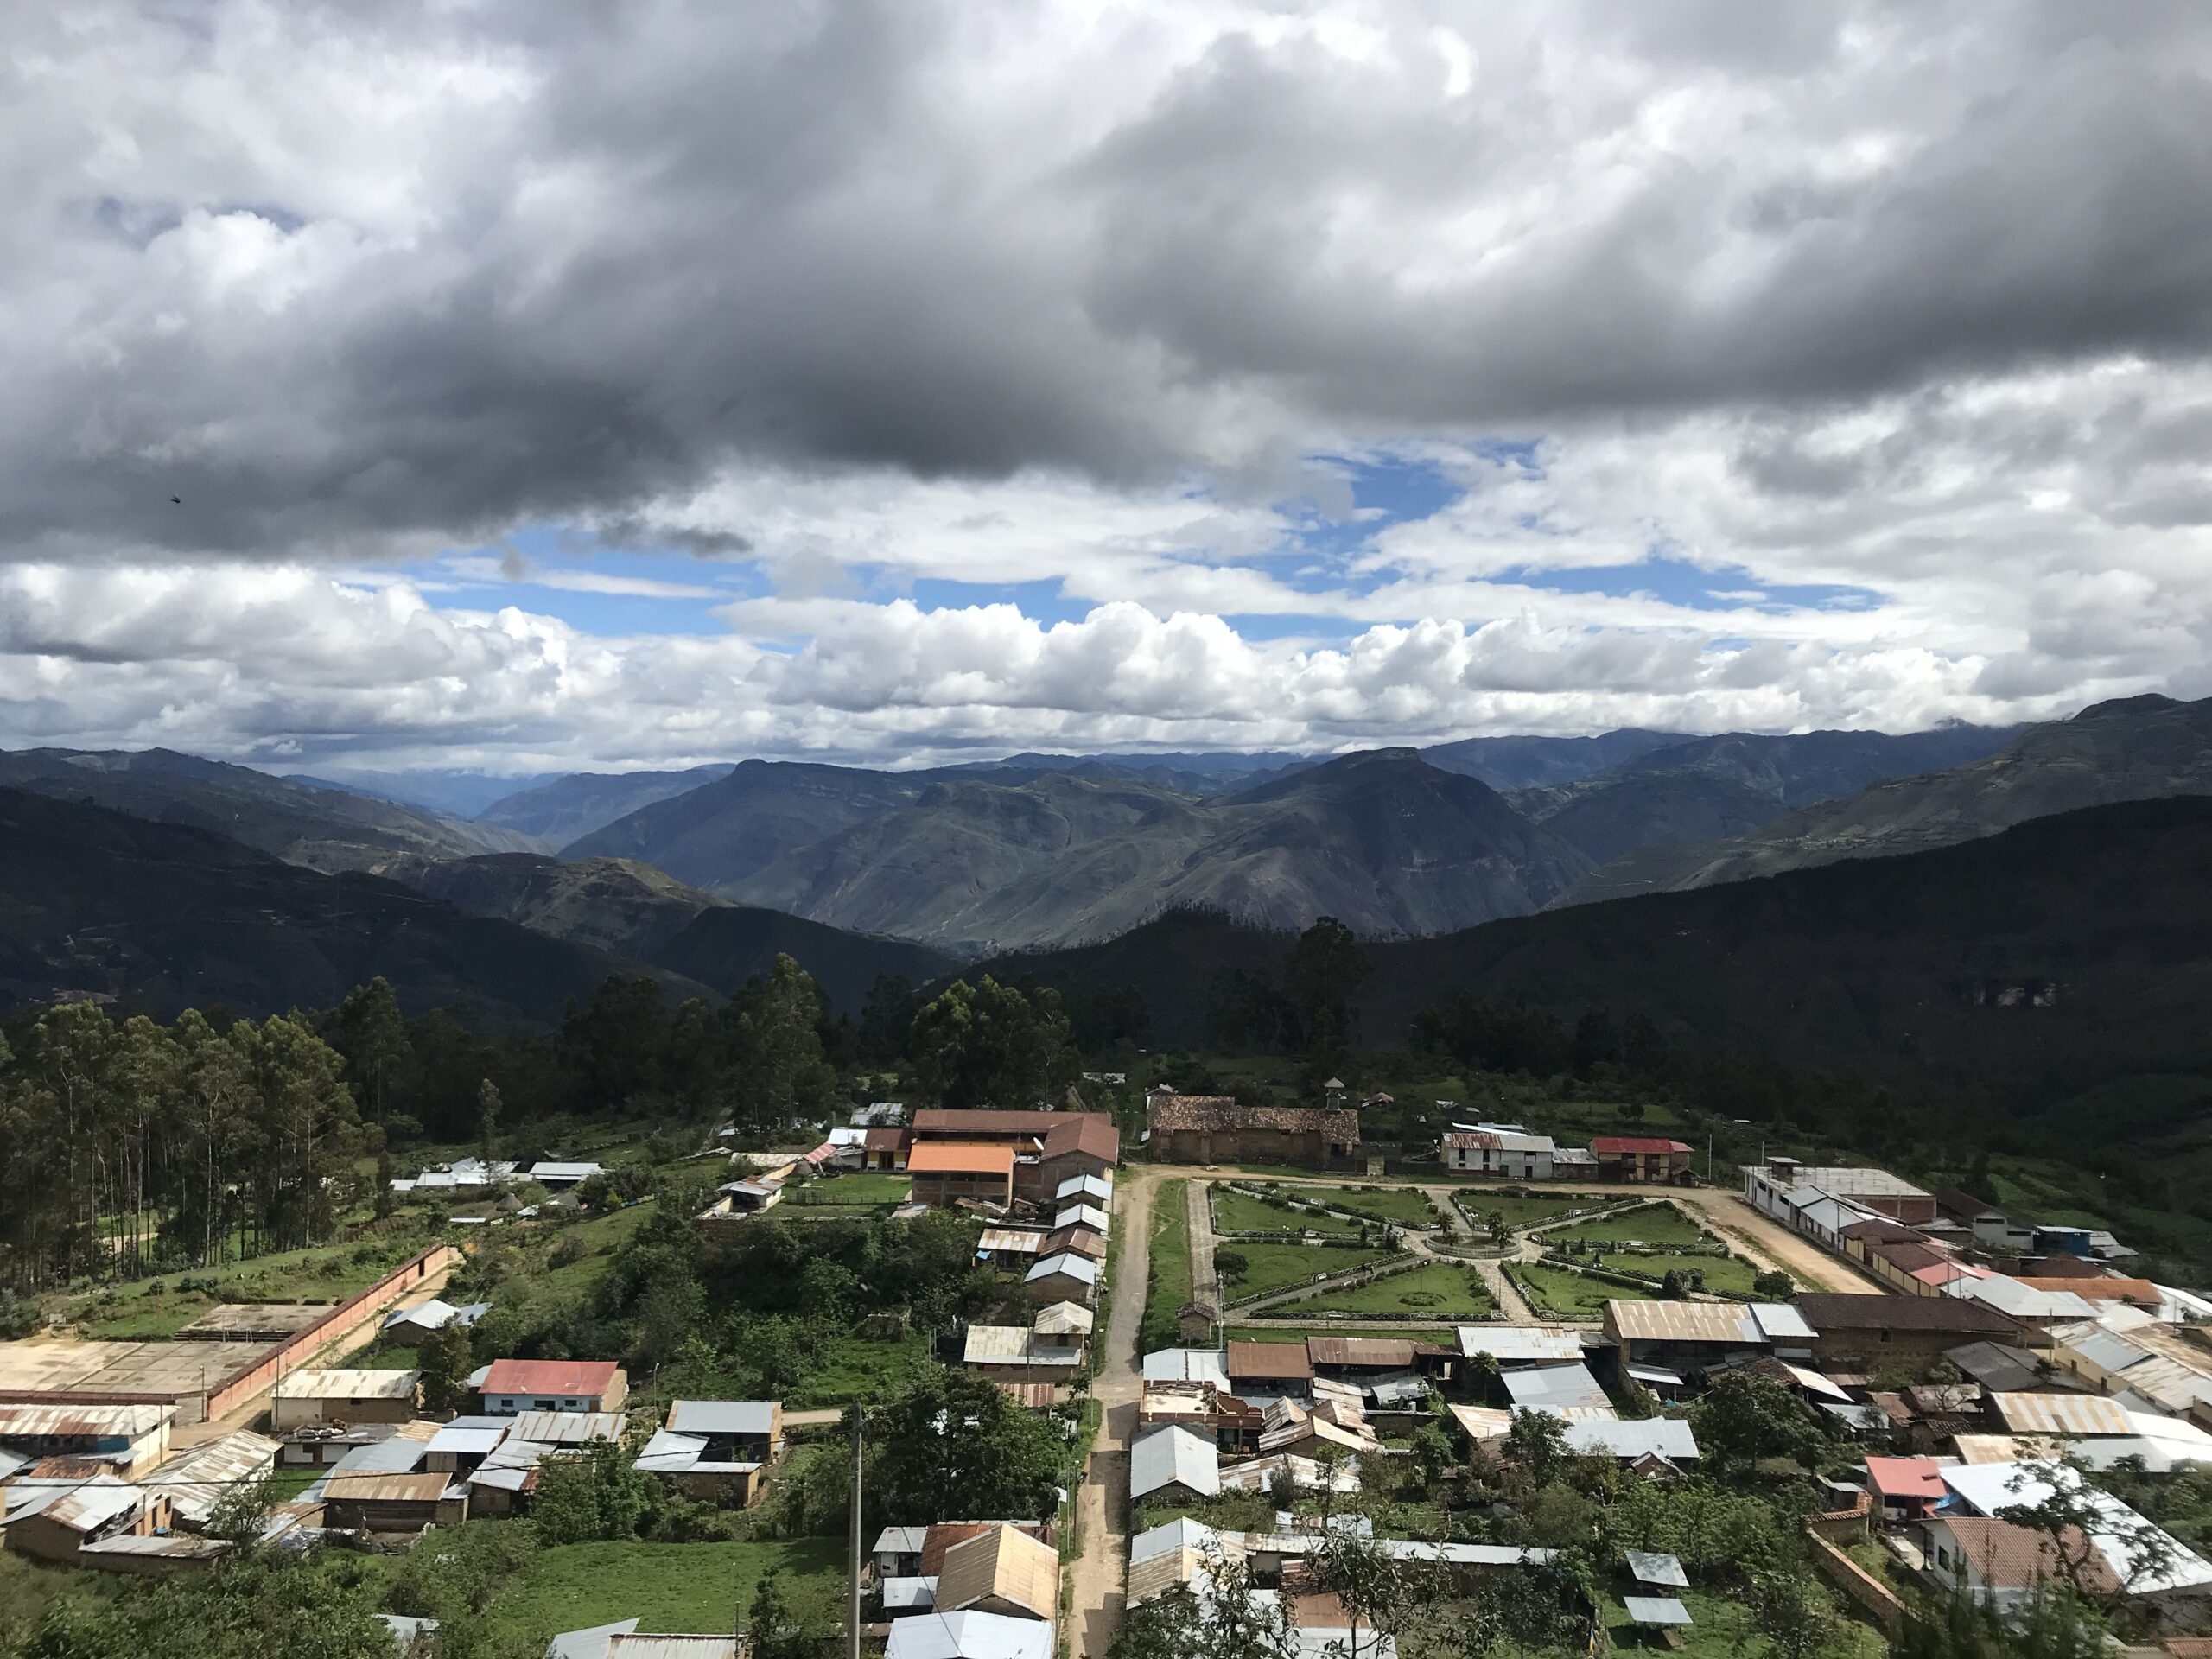 Abbey Edwards's community in the Andes mountains, Peru. Image credit: Peace Corps Students